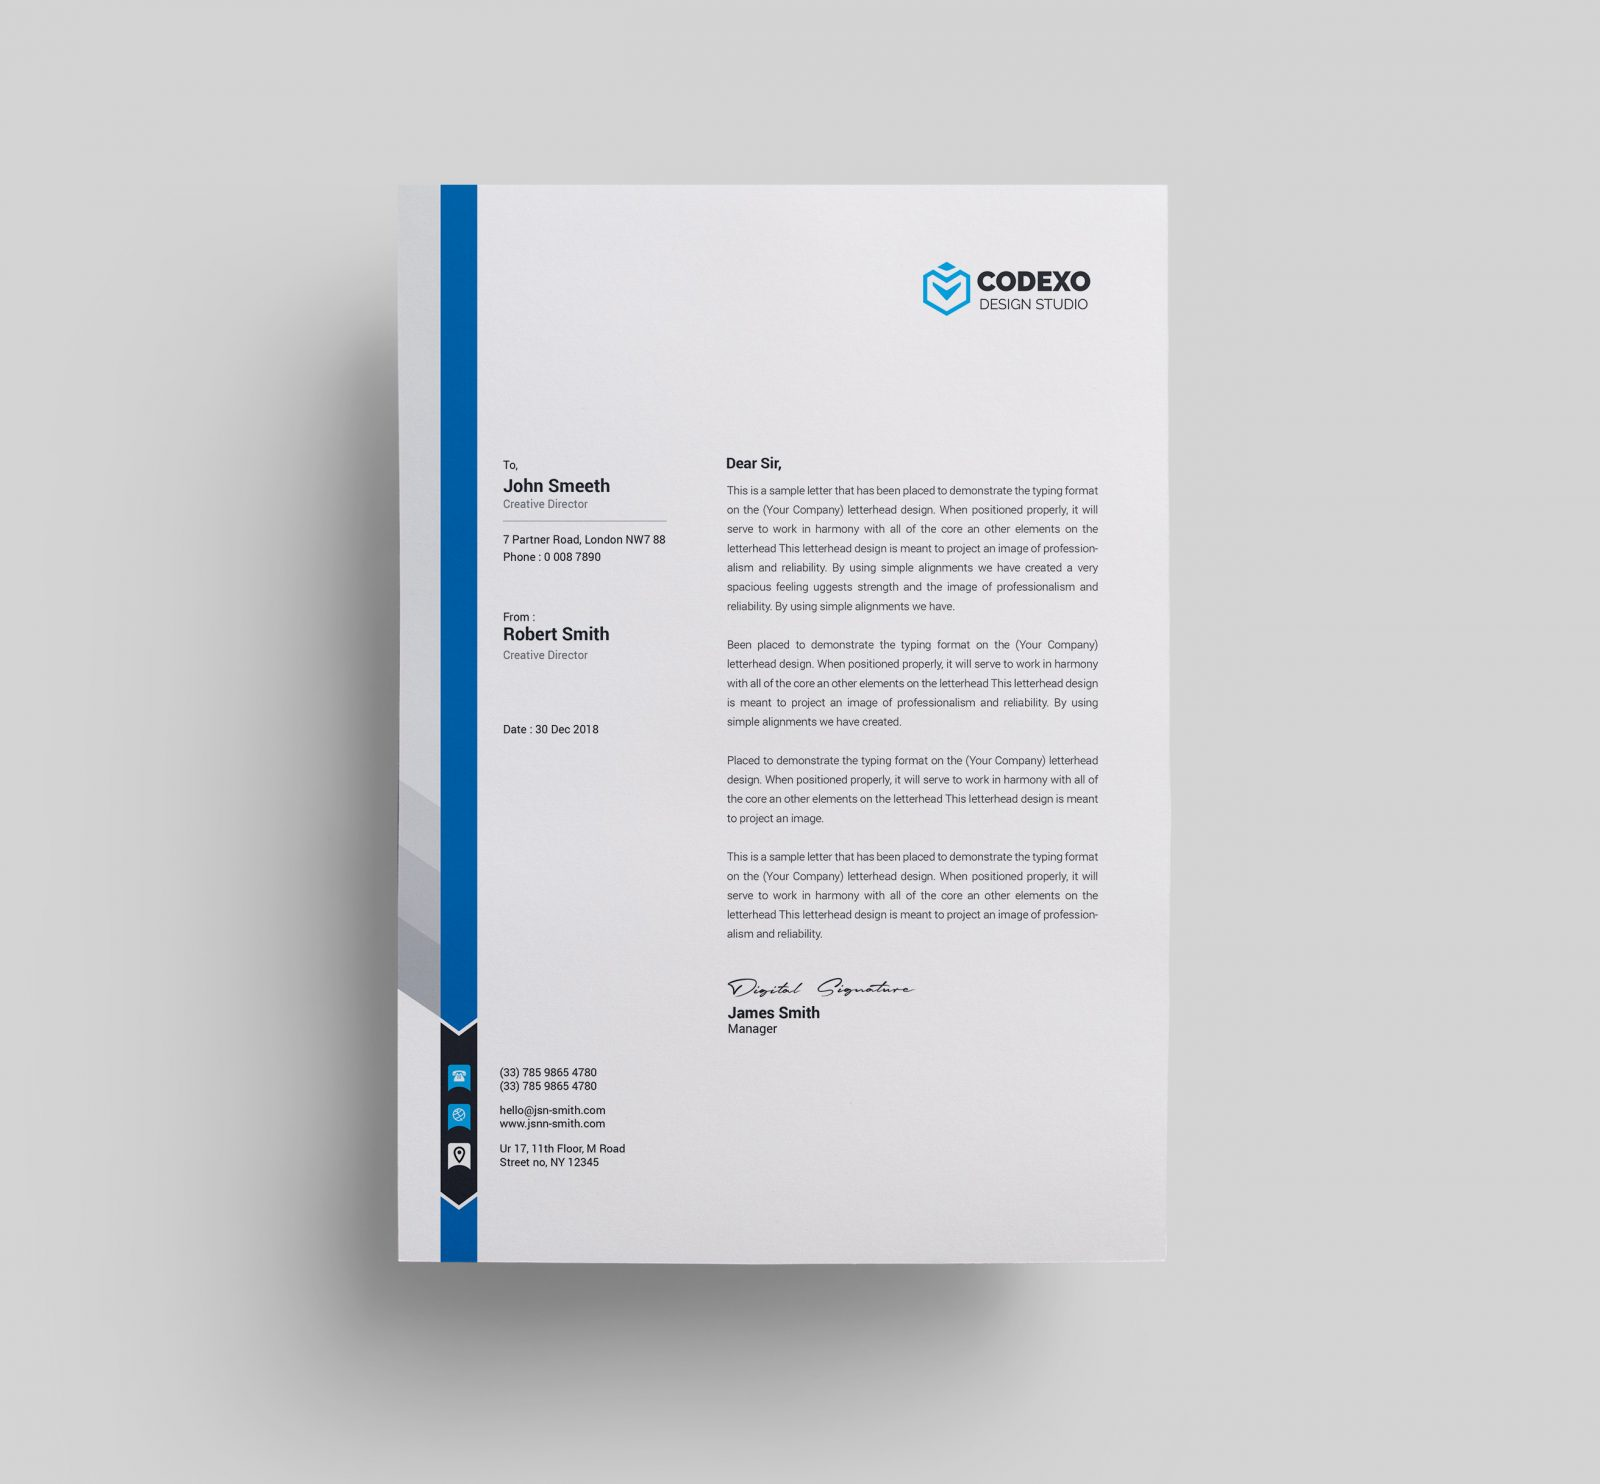 Executive Stationery Letterhead Business Letterhead 8370: Letterhead Templates 000579